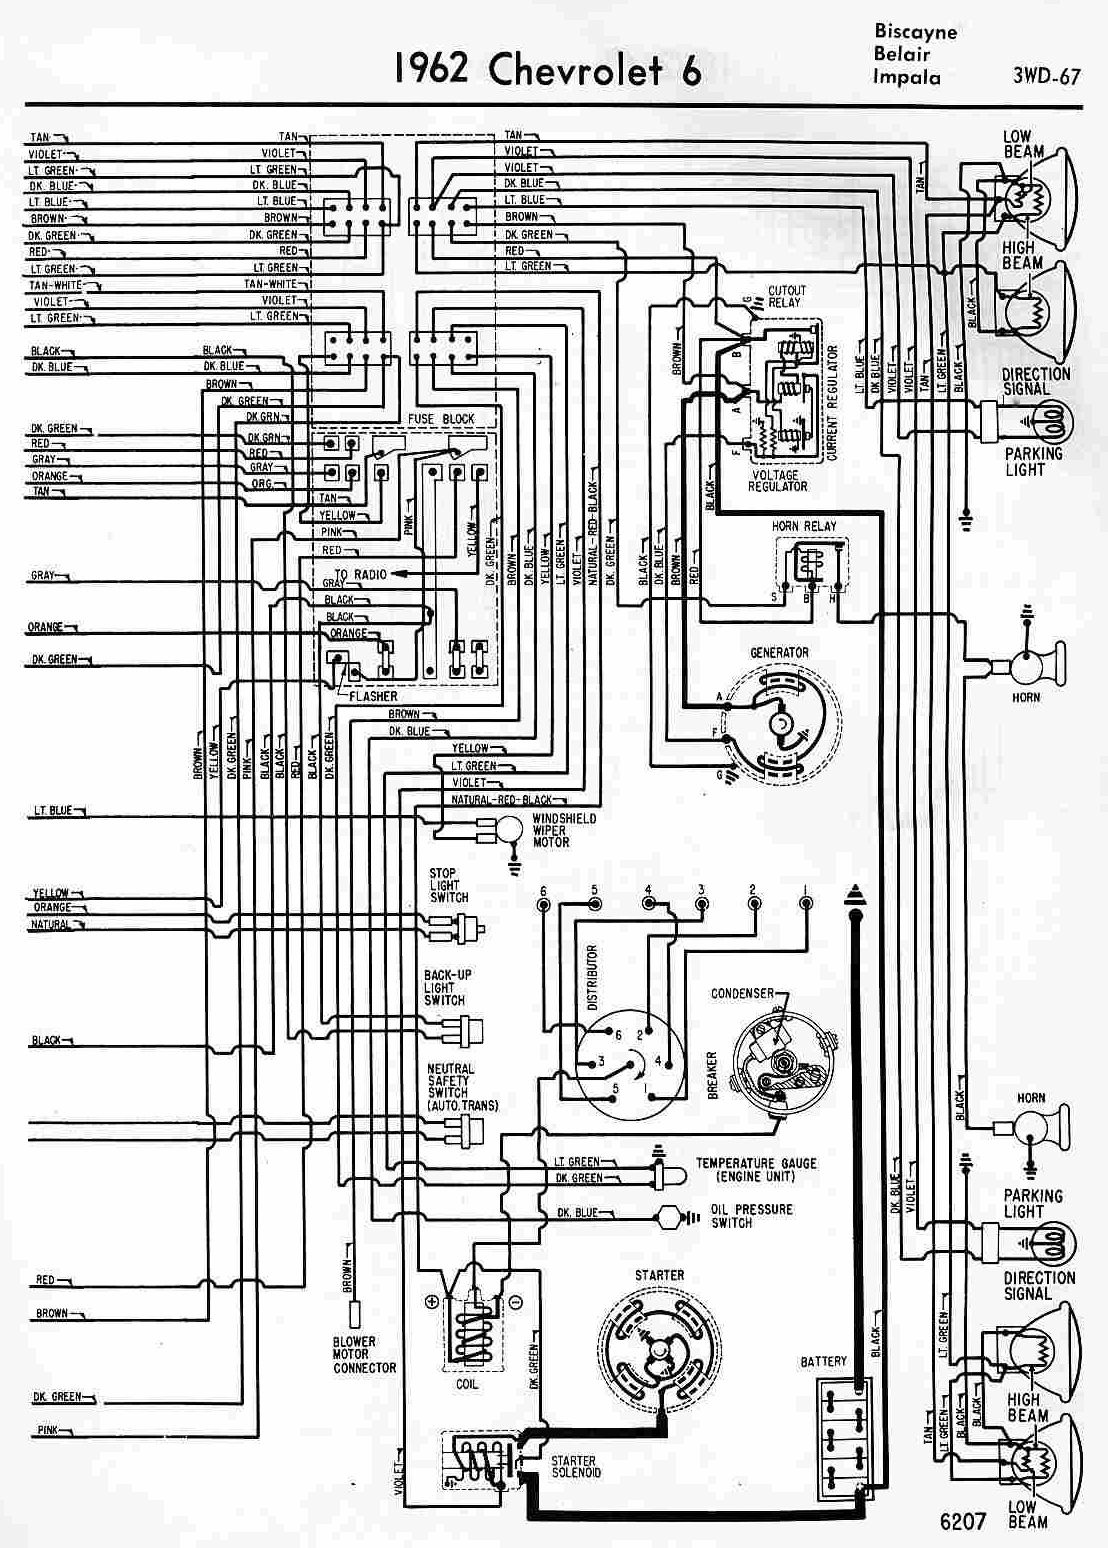 1961 impala wiring diagram online wiring diagram Wiring Diagram for 1967 Chevy Impala color wiring diagram 1961 ford galaxie schematic basic electronics 1961 impala wiring diagram